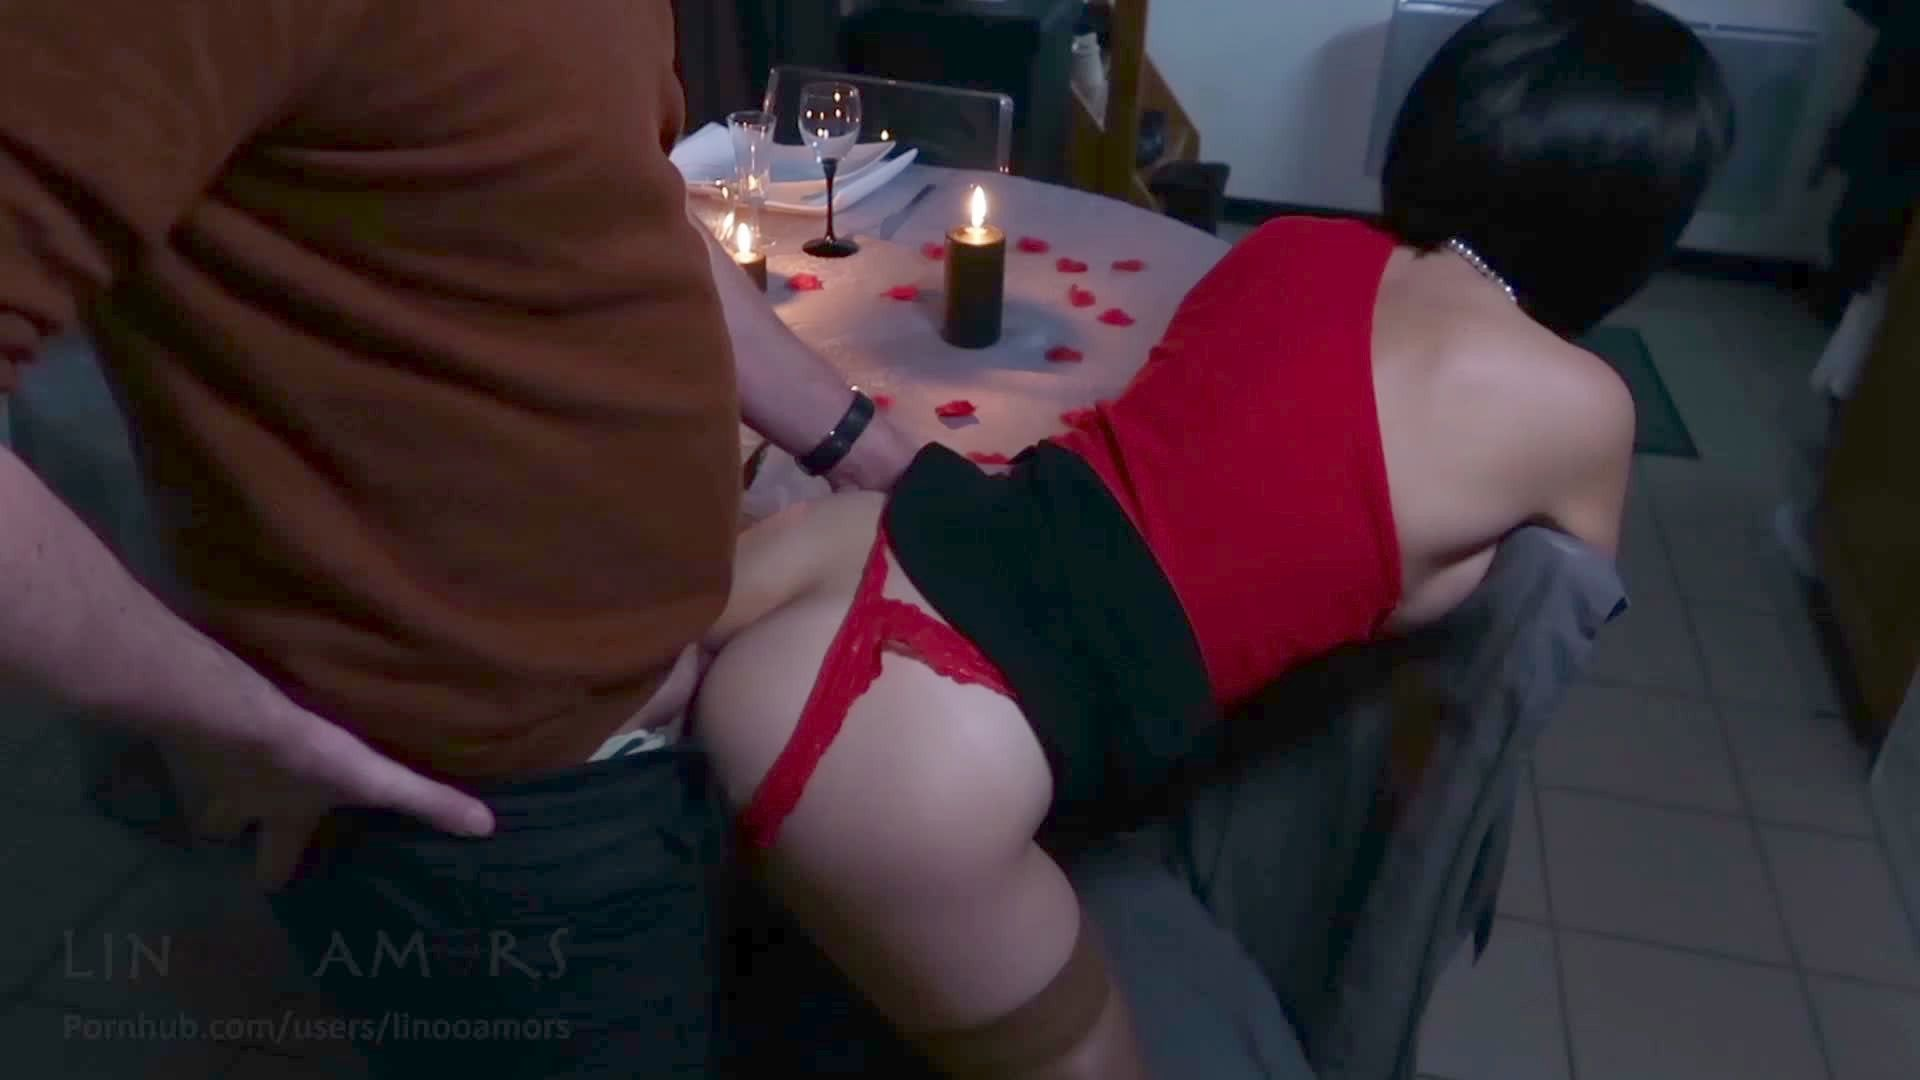 asames hd xxx video bf. and gf